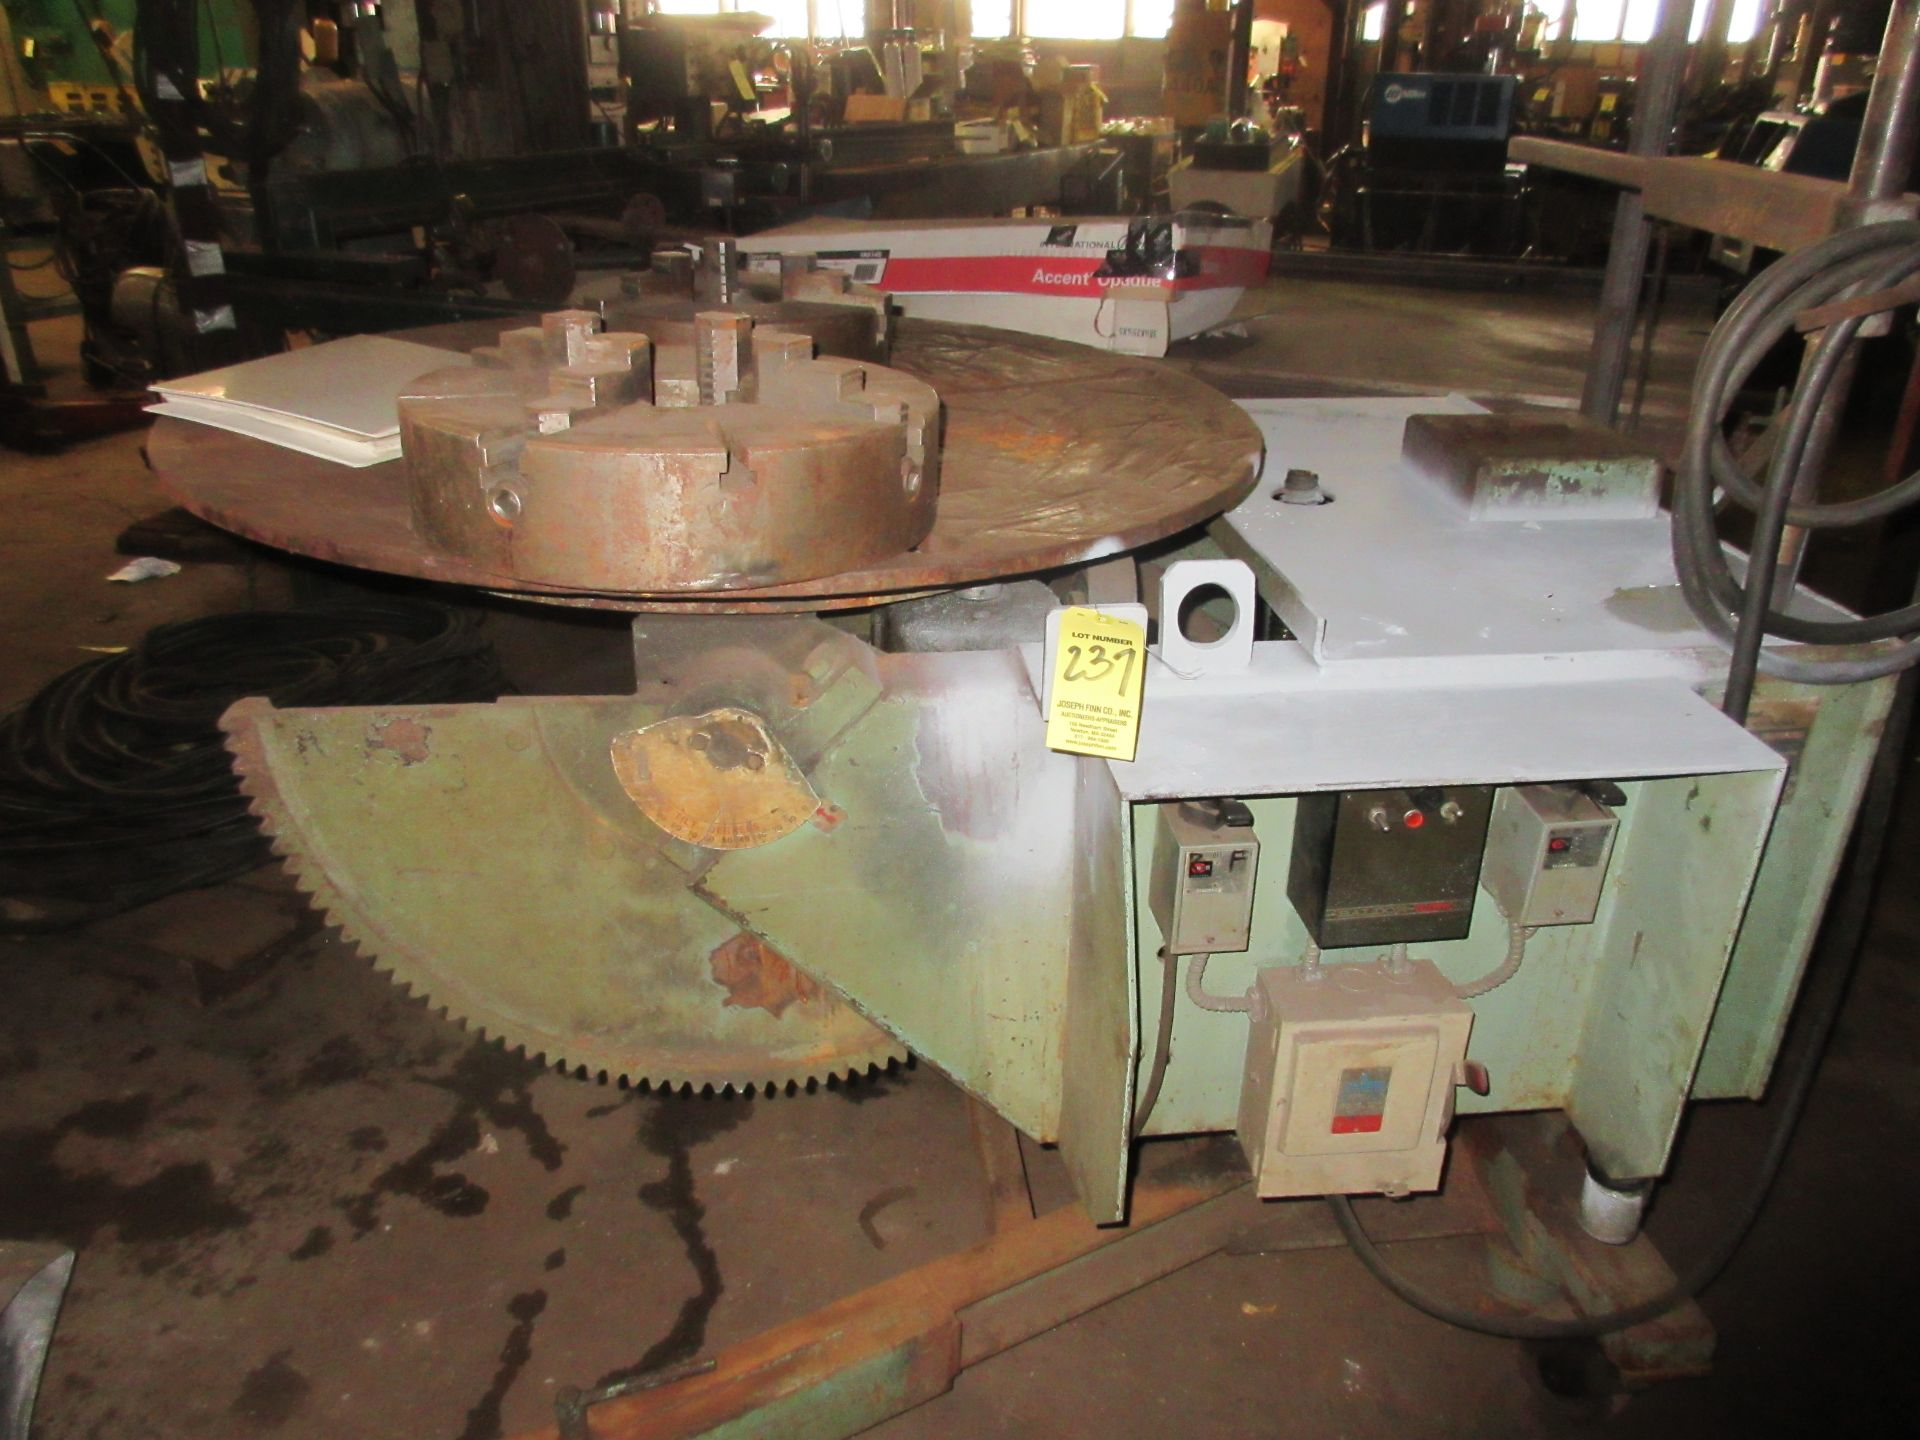 """(1) Ransome M/N 25R S/N 163865 Capacity 2,500 lb. Welding Positioner, 12"""" 3 Jaw Chuck, 16"""" 4 Jaw - Image 2 of 2"""